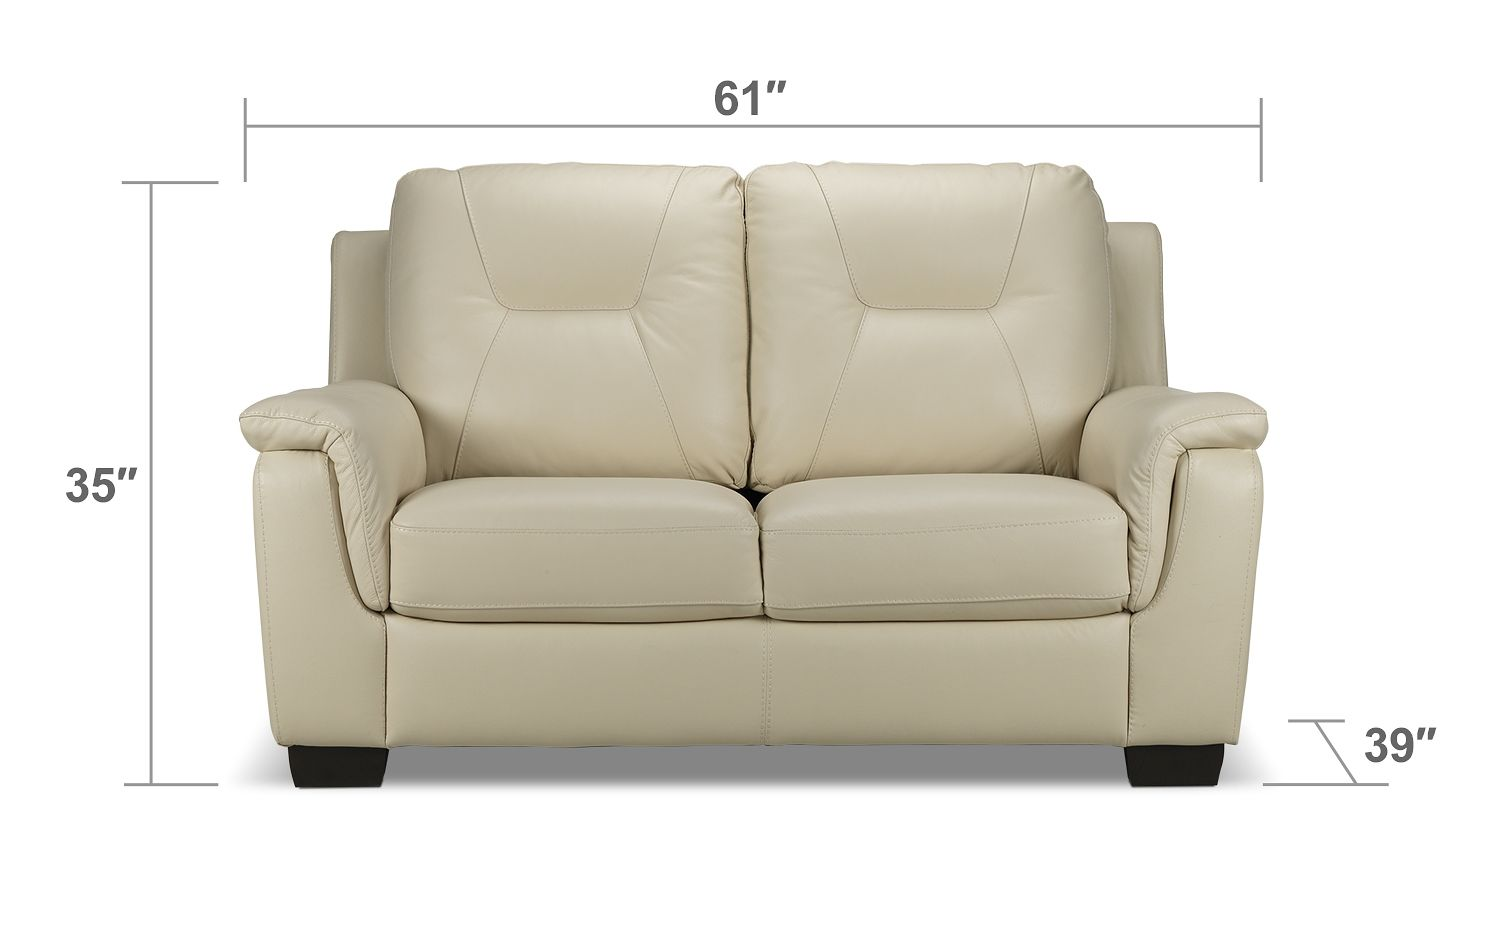 Canada S Top Furniture Appliance More Store Leon S Love Seat Top Furniture Furniture